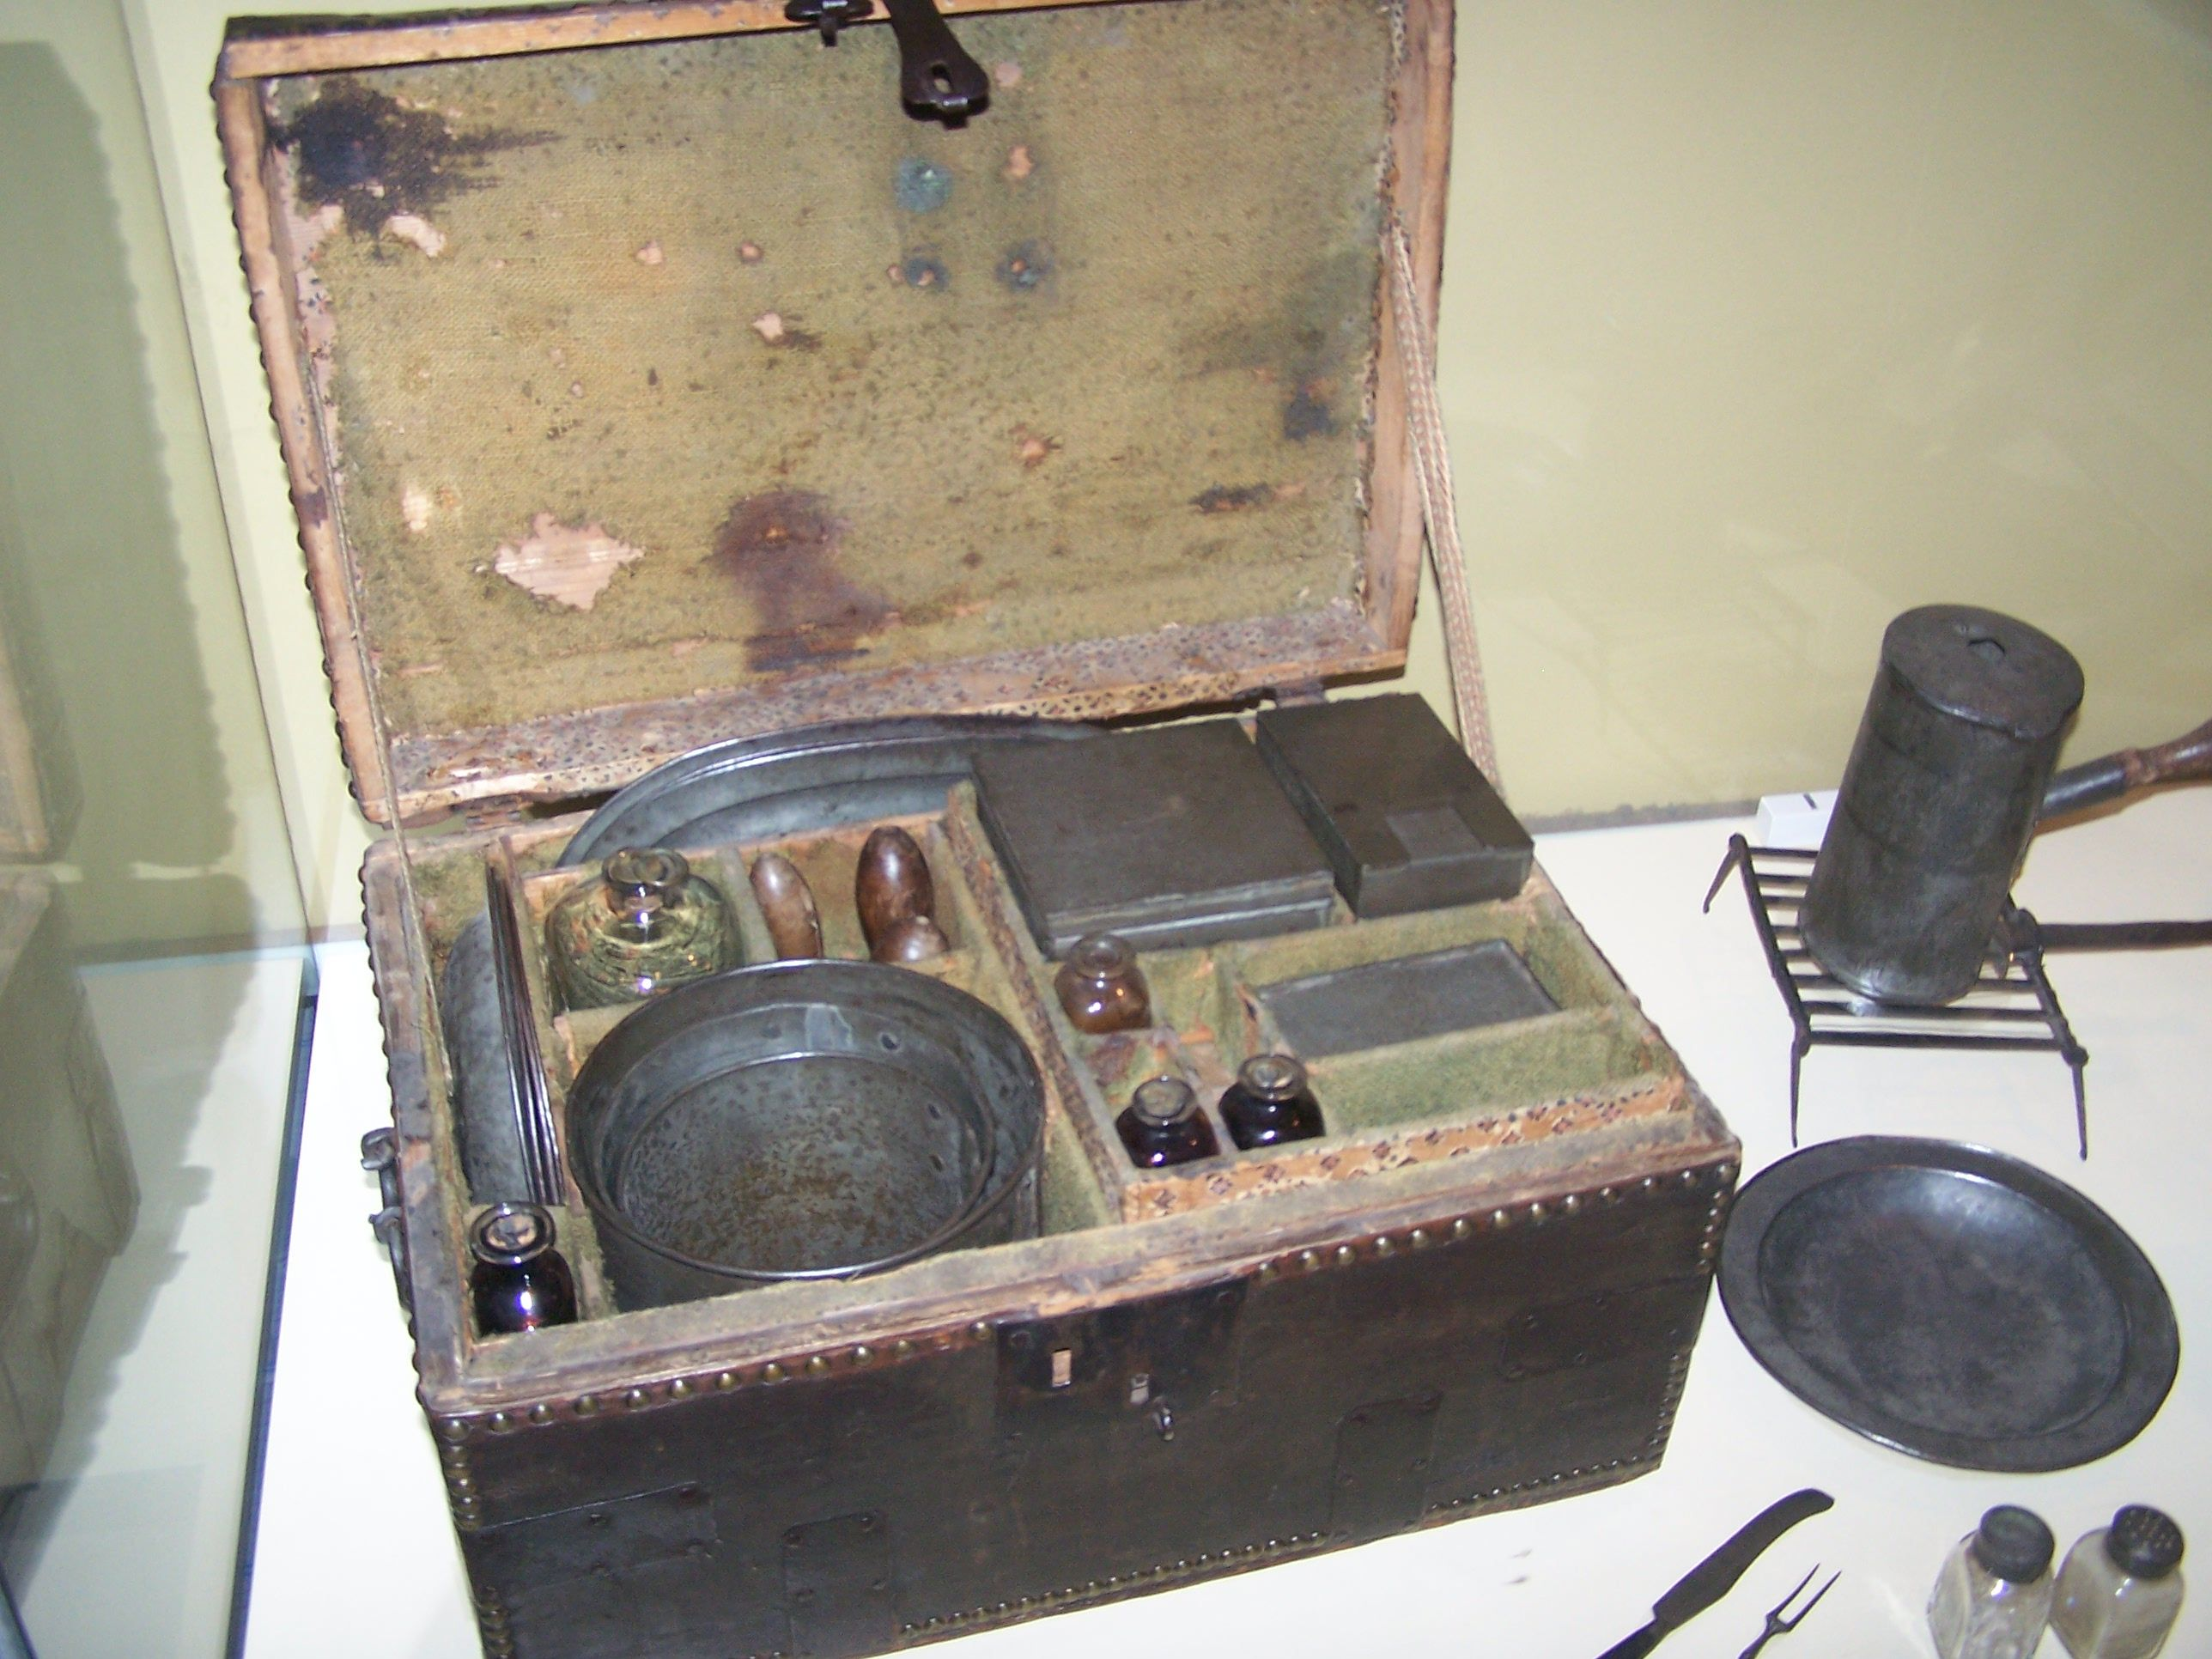 George Washington S Camp Chest That He Used During The Revolutionary War